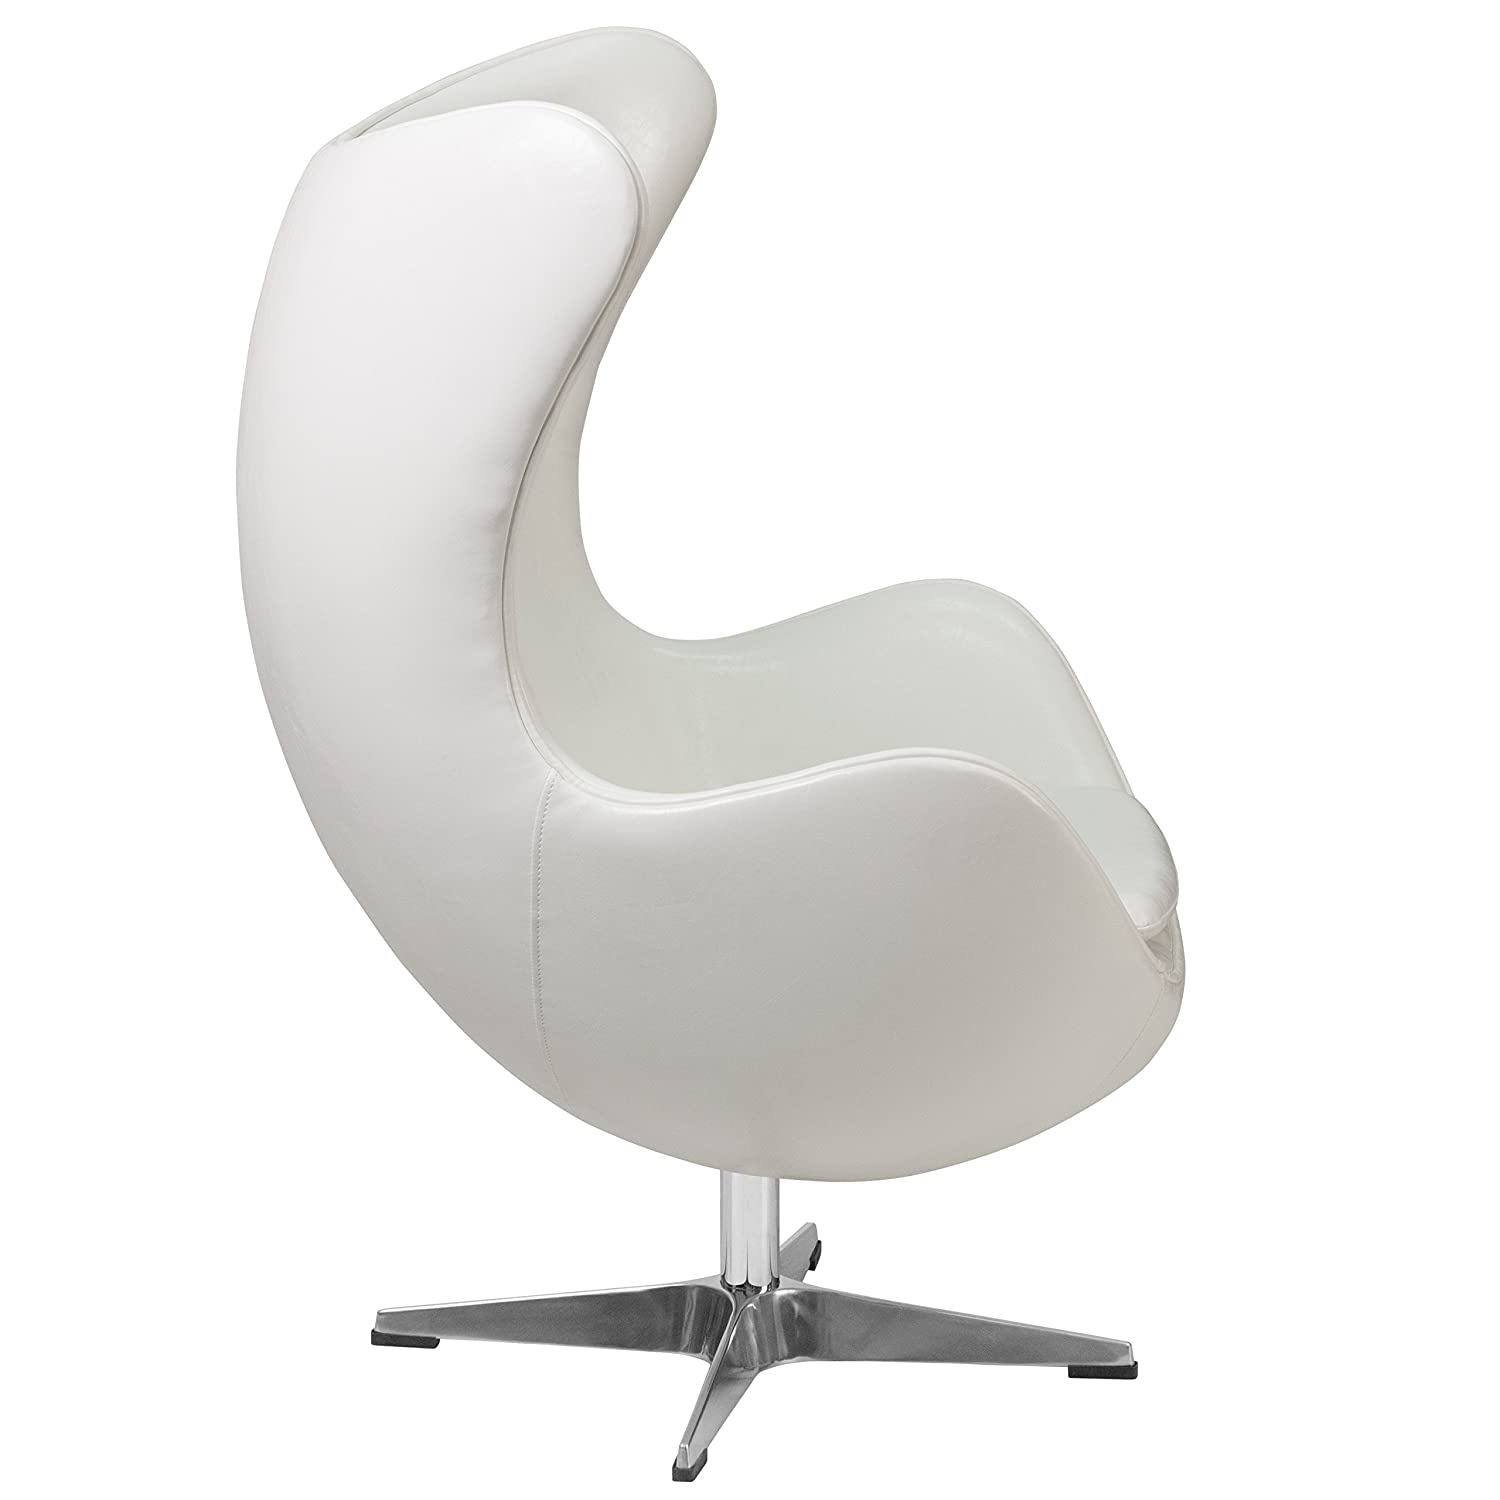 Design Egg Chair amazon com flash furniture melrose white leather egg chair with tilt lock mechanism kitchen dining